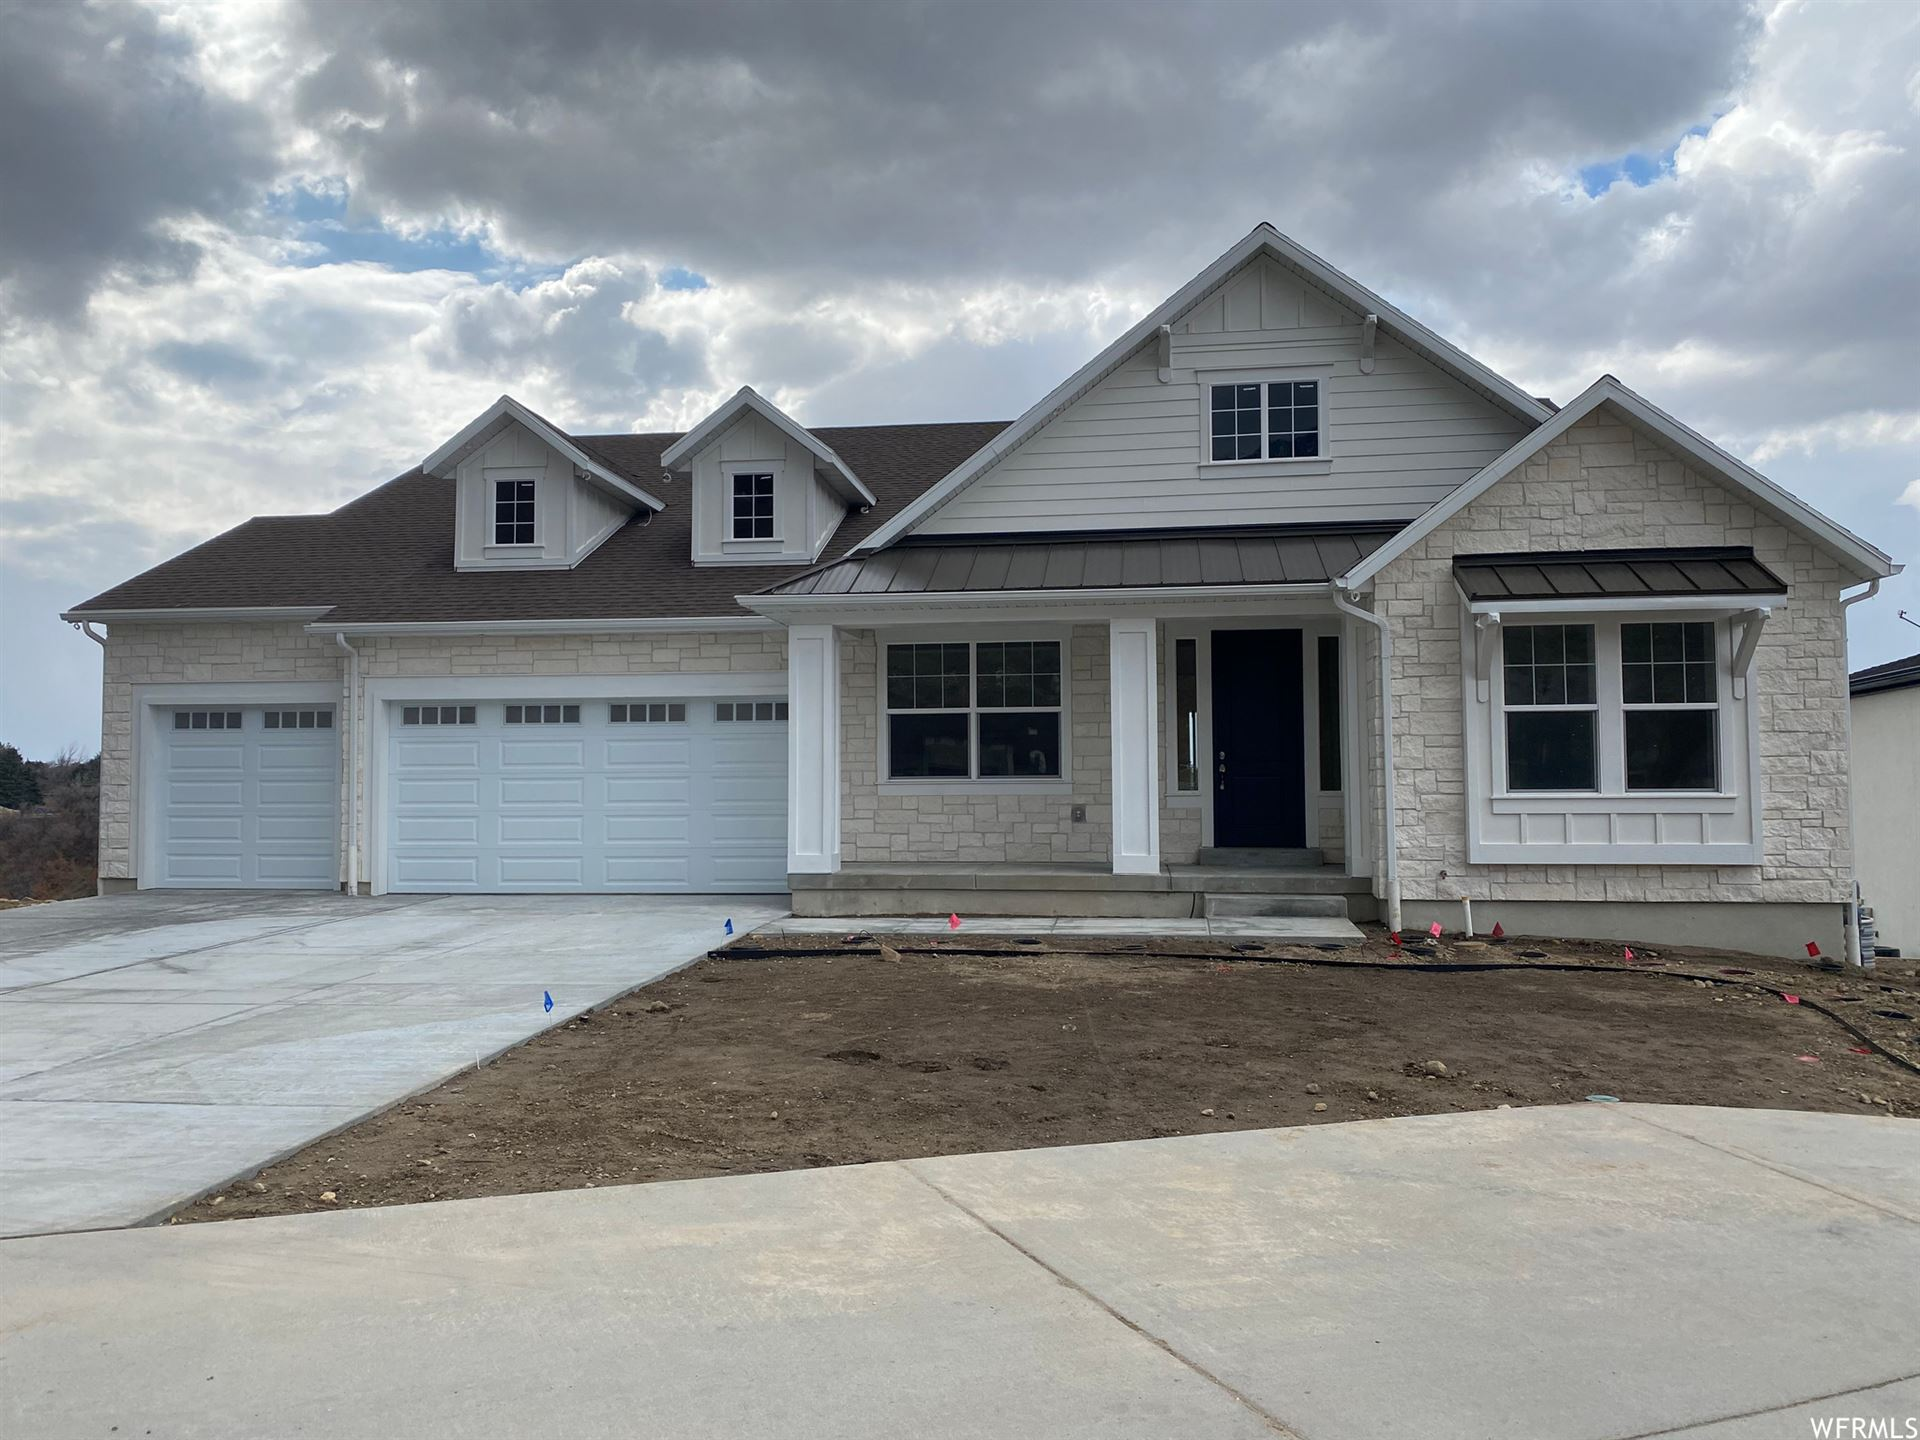 Photo of 9284 S MONET E LN #318, Cottonwood Heights, UT 84093 (MLS # 1732539)